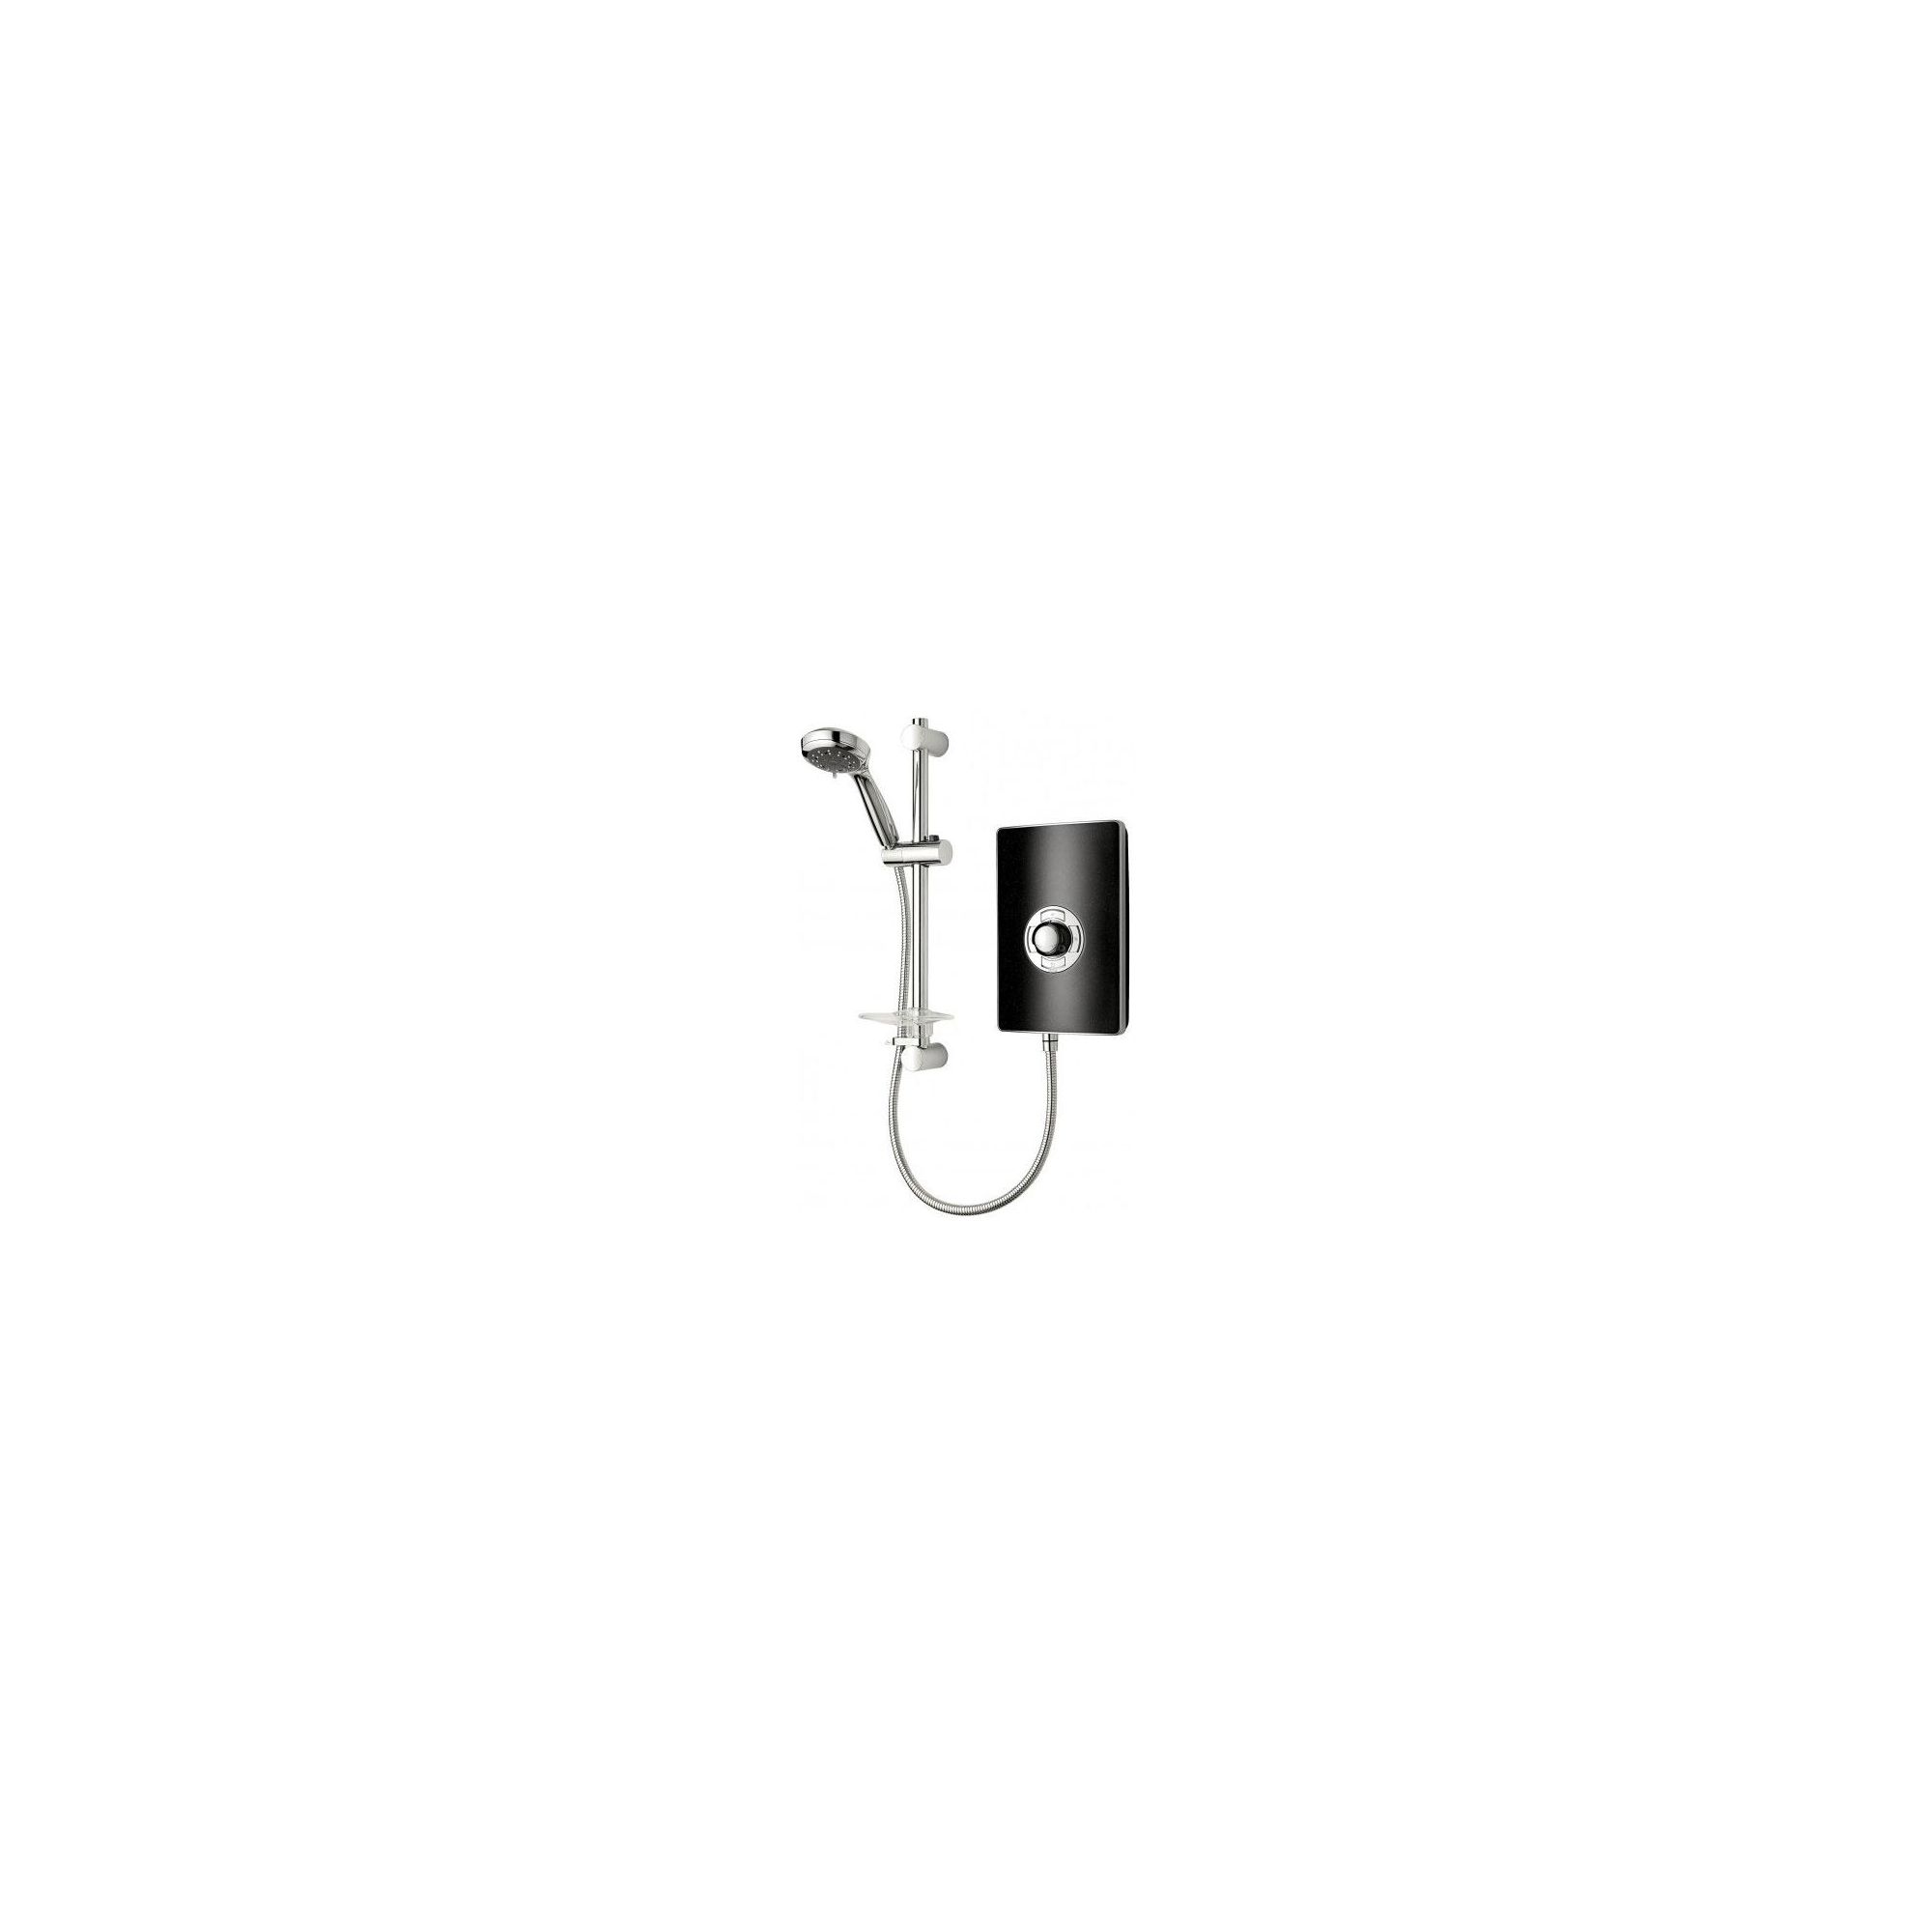 Triton Aspirante Electric Shower Black Pearl 9.5 kW at Tesco Direct